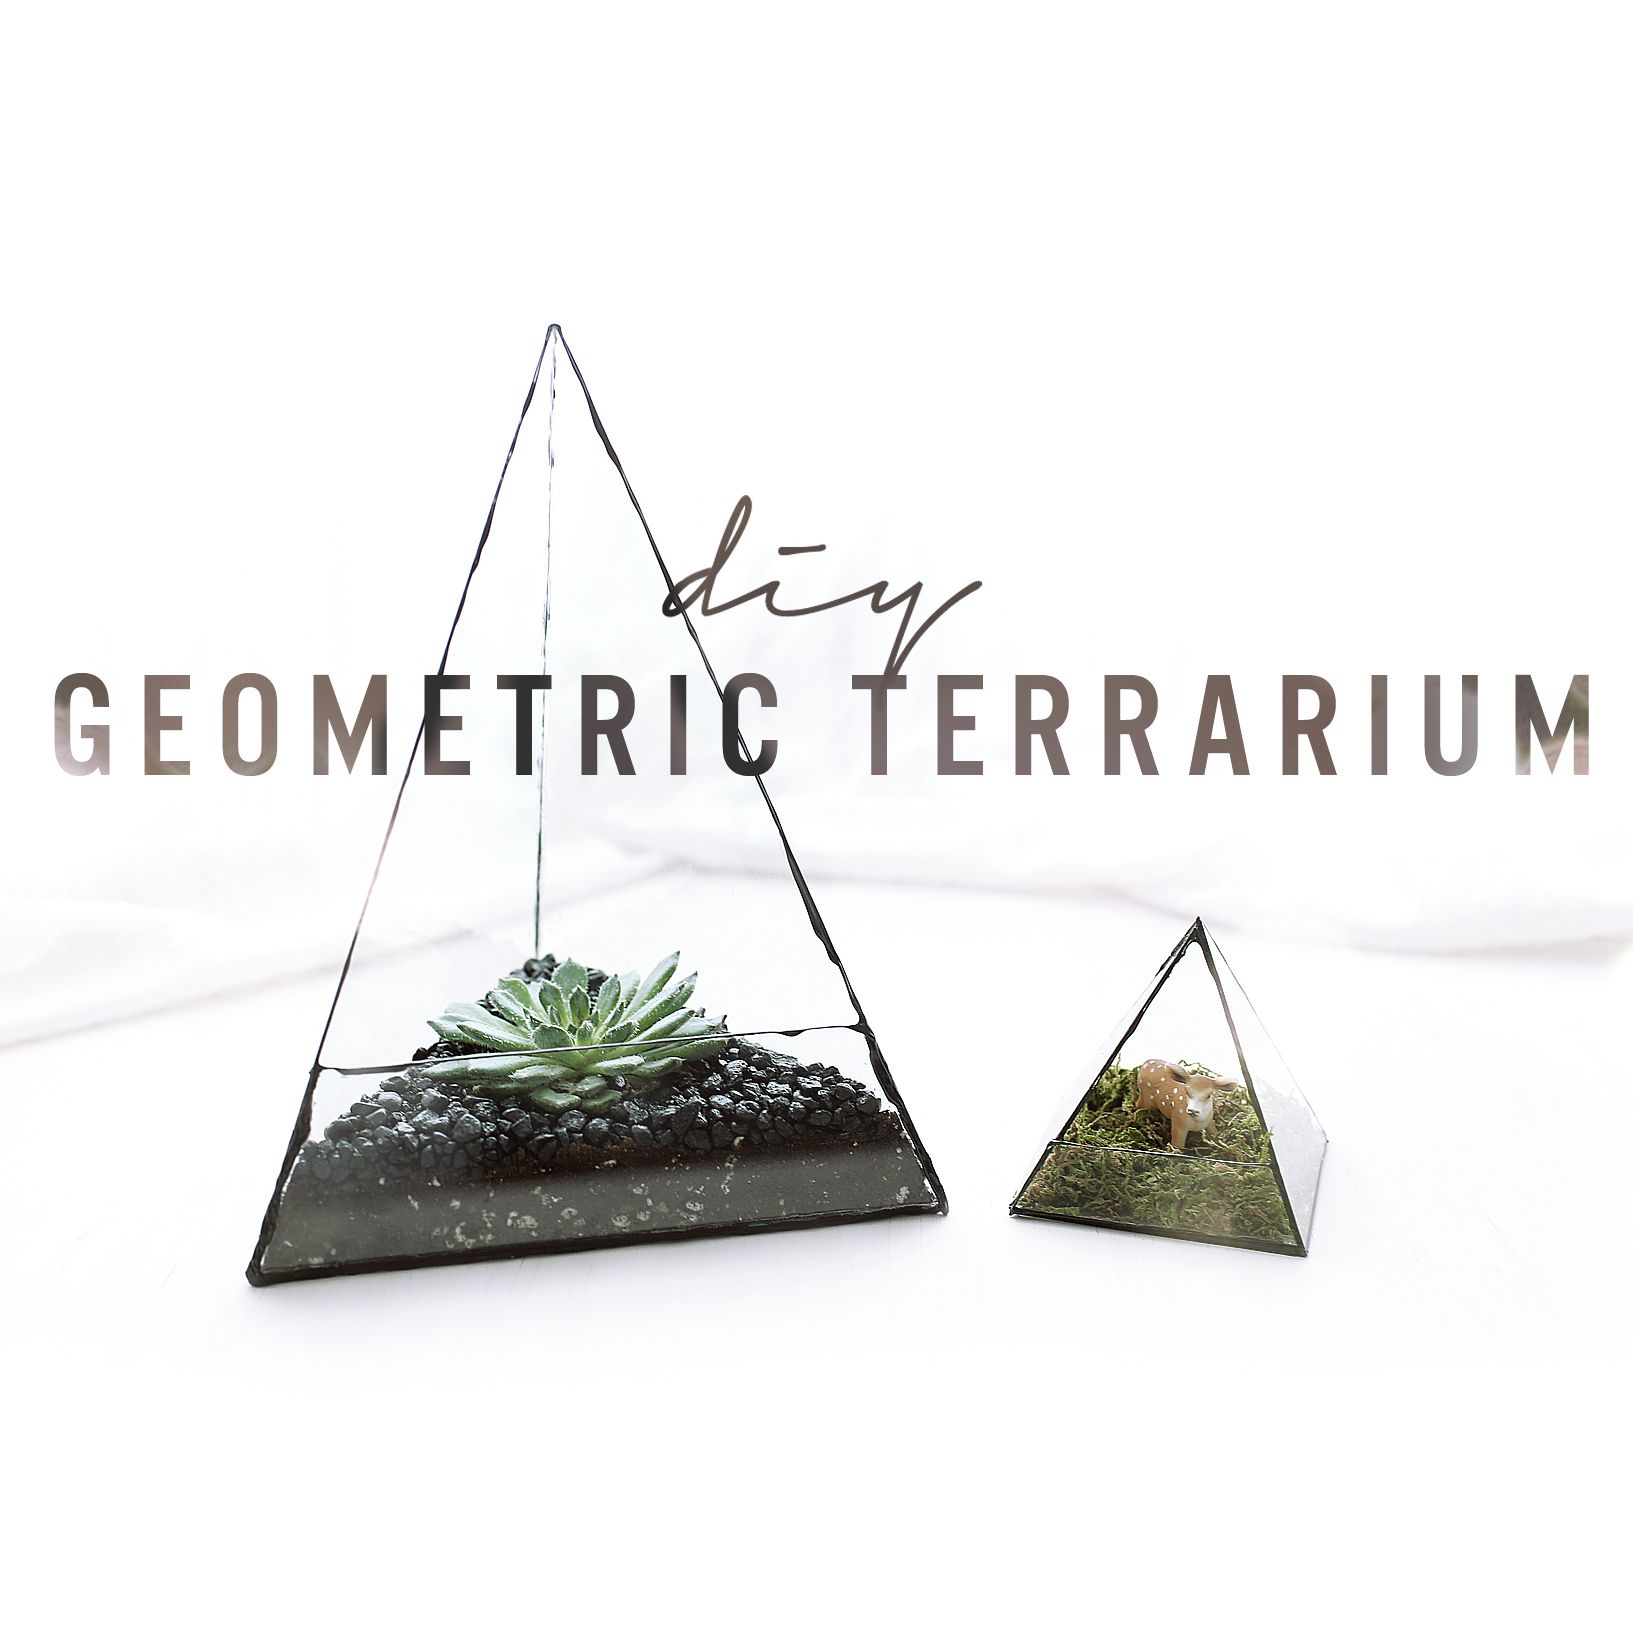 Make These Super Geometric Glass Terrariums Using Old Picture Frames